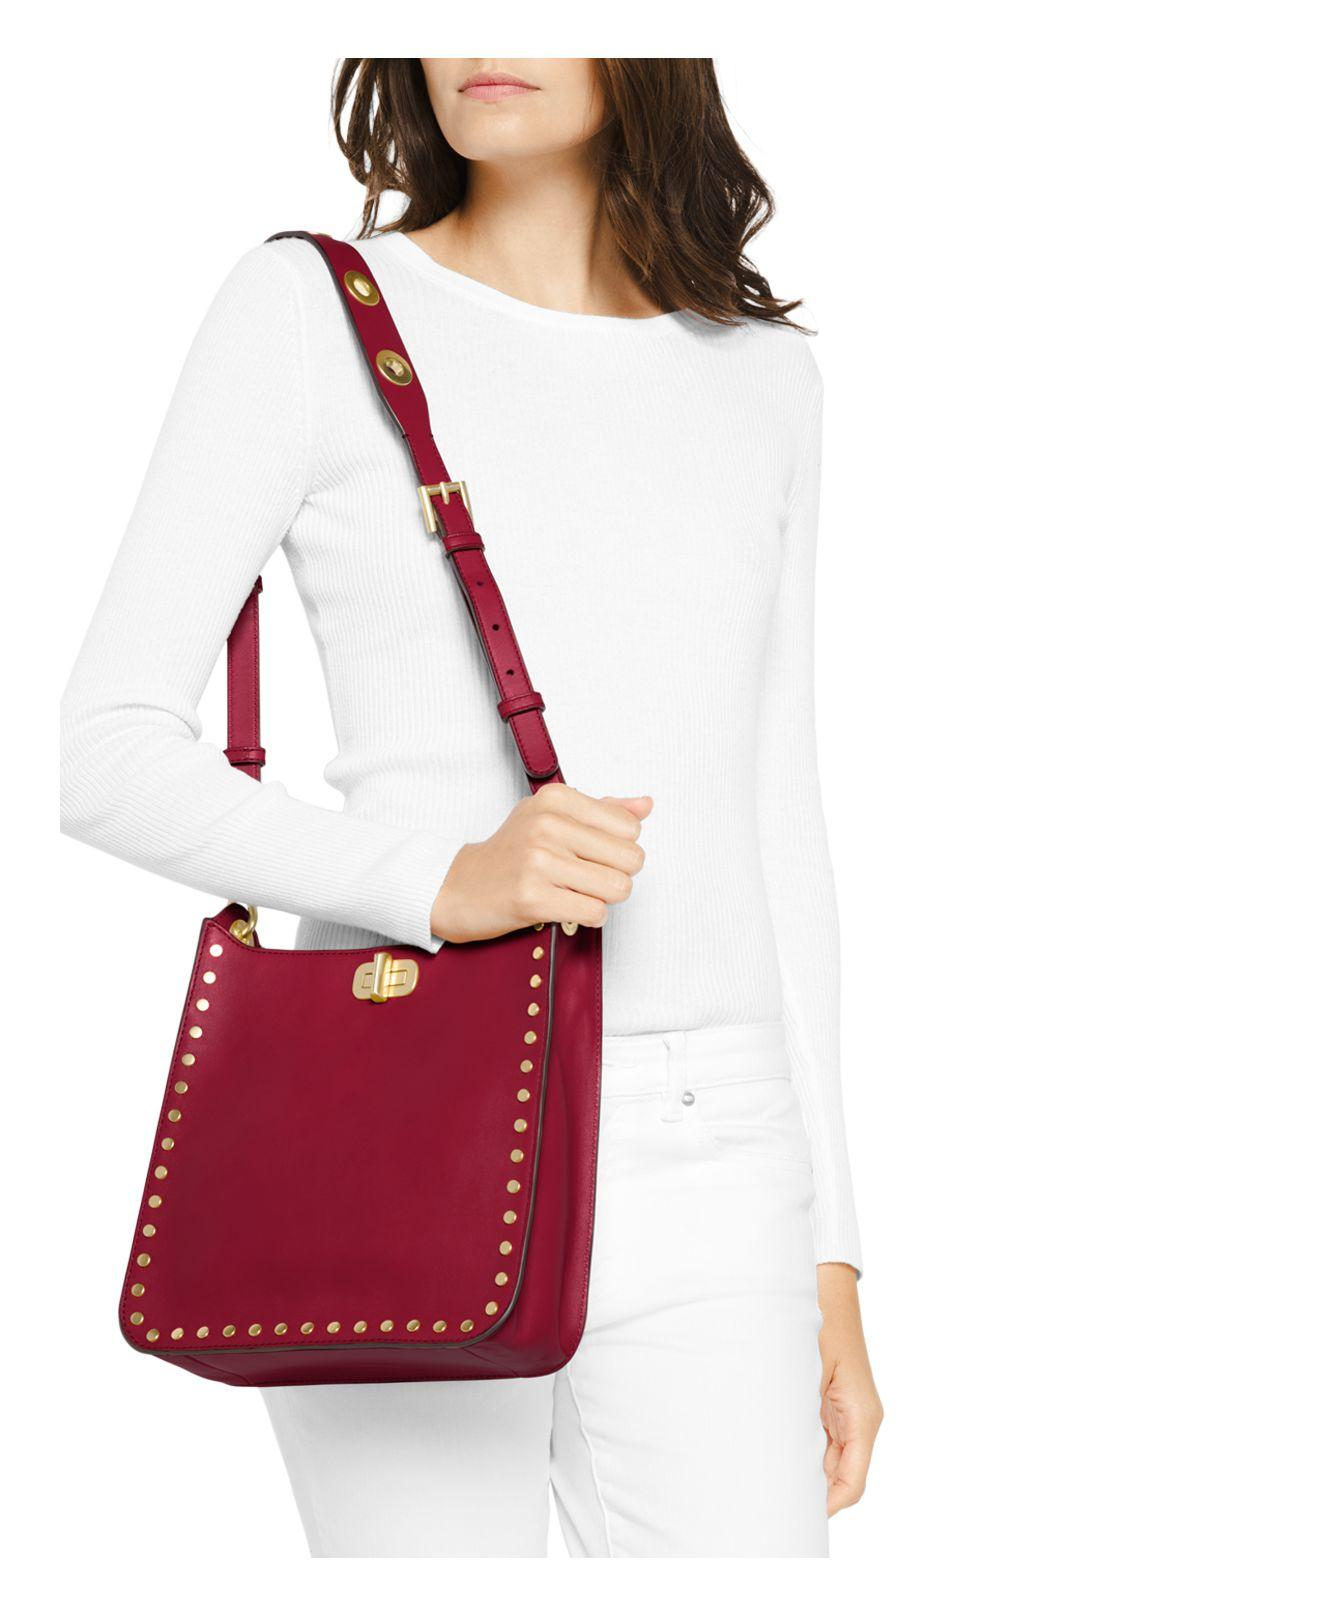 ec851f8799d342 Gallery. Previously sold at: Bloomingdale's · Women's Leather Messenger Bags